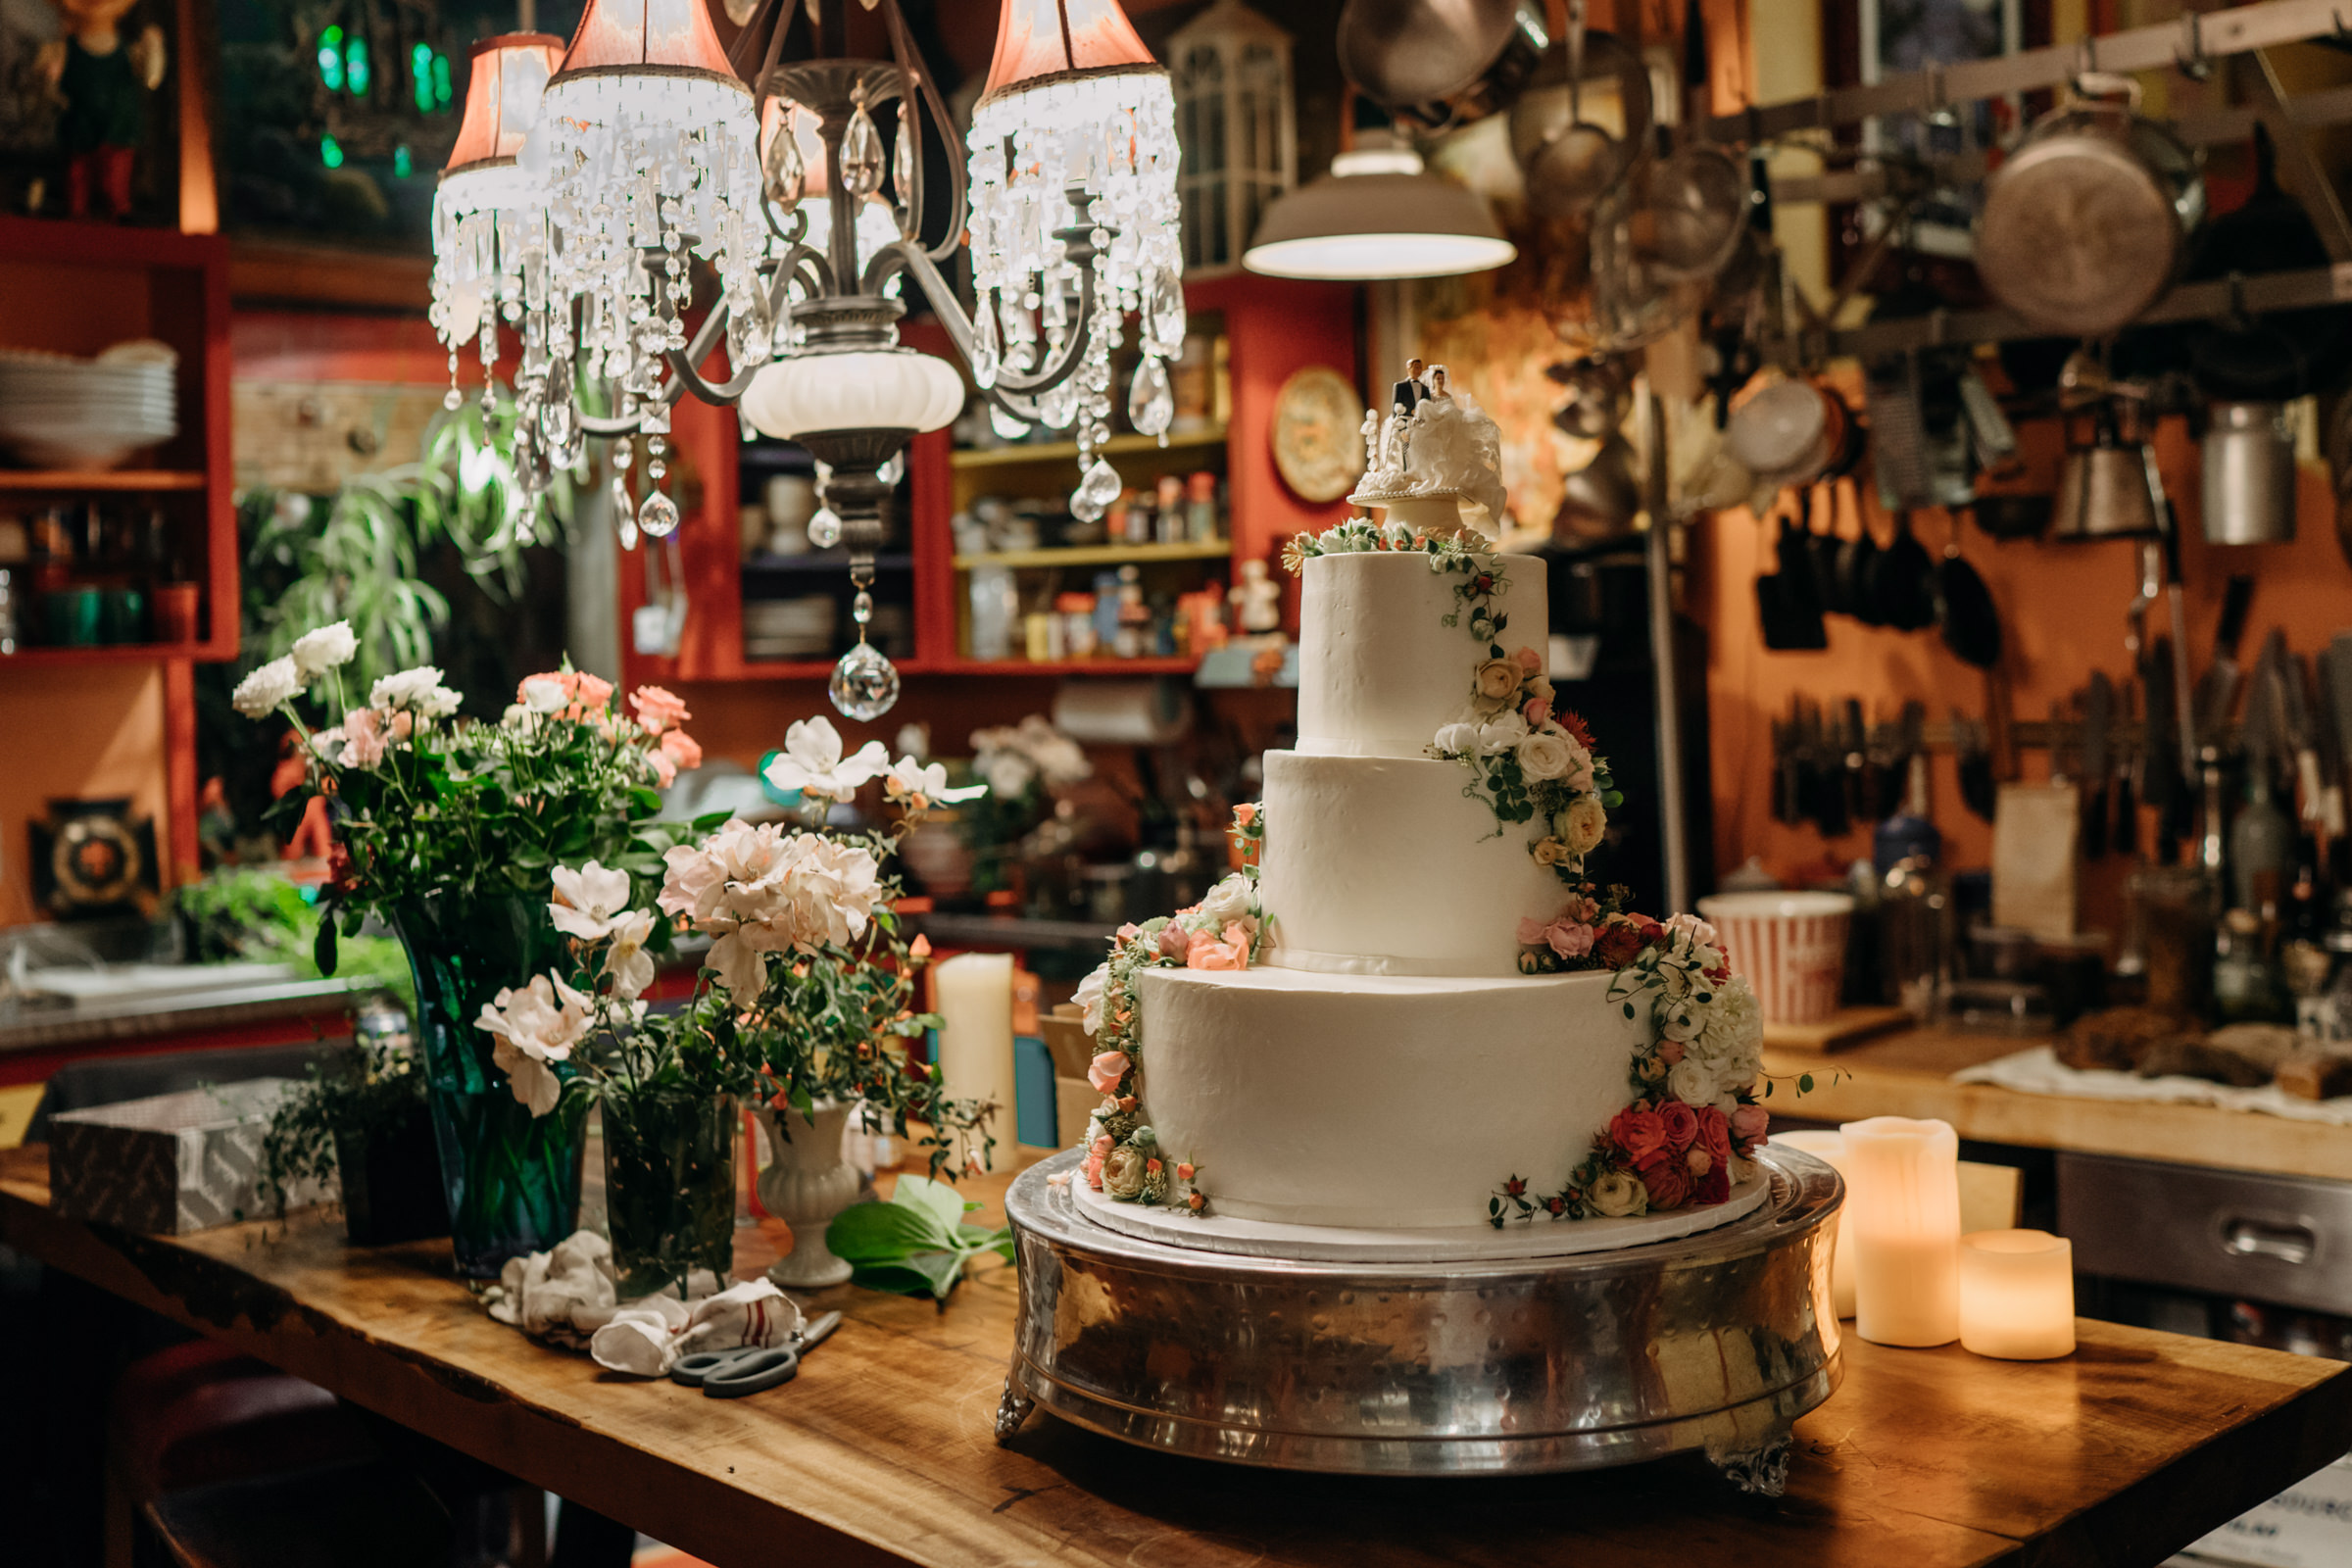 Colorful wedding cake in kitchen - photo by Sasha Reiko Photography